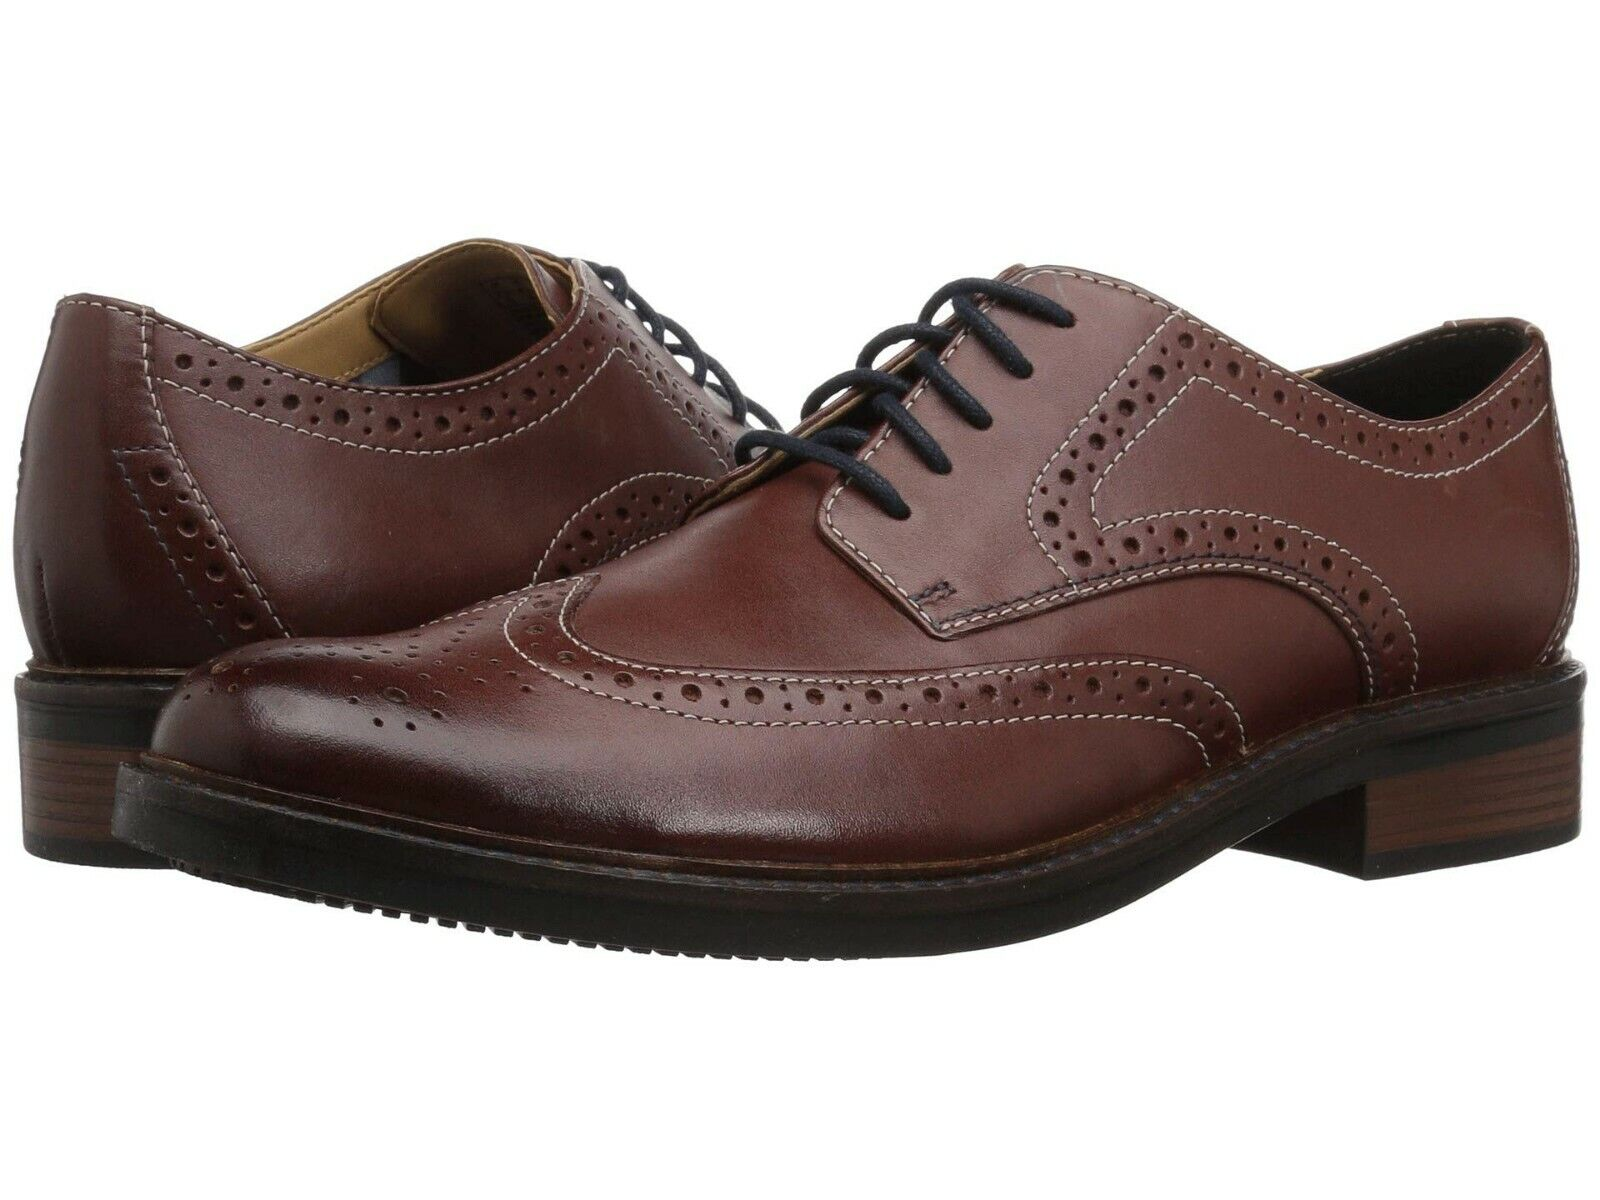 Men's shoes Clarks Bostonian MAXTON WING Leather Wingtip Oxfords 36623 TAN